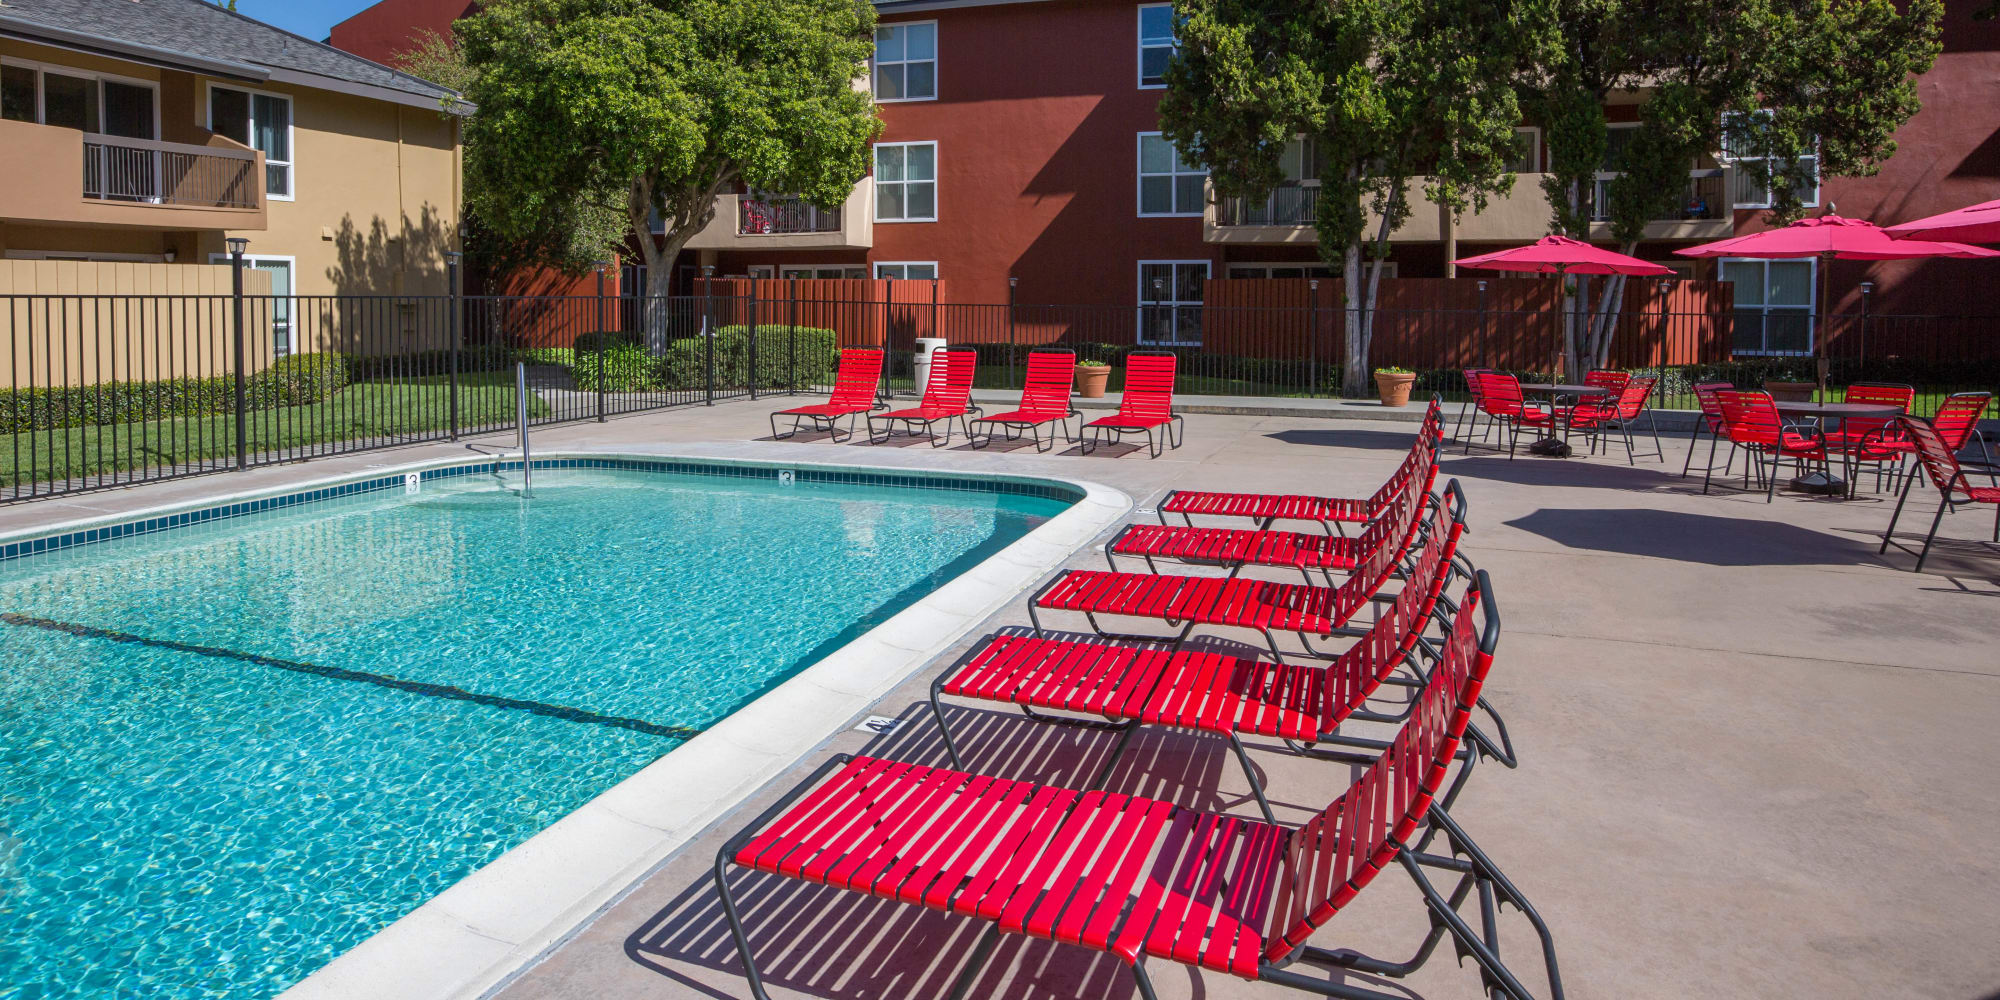 Carriage House Apartments in Fremont, California